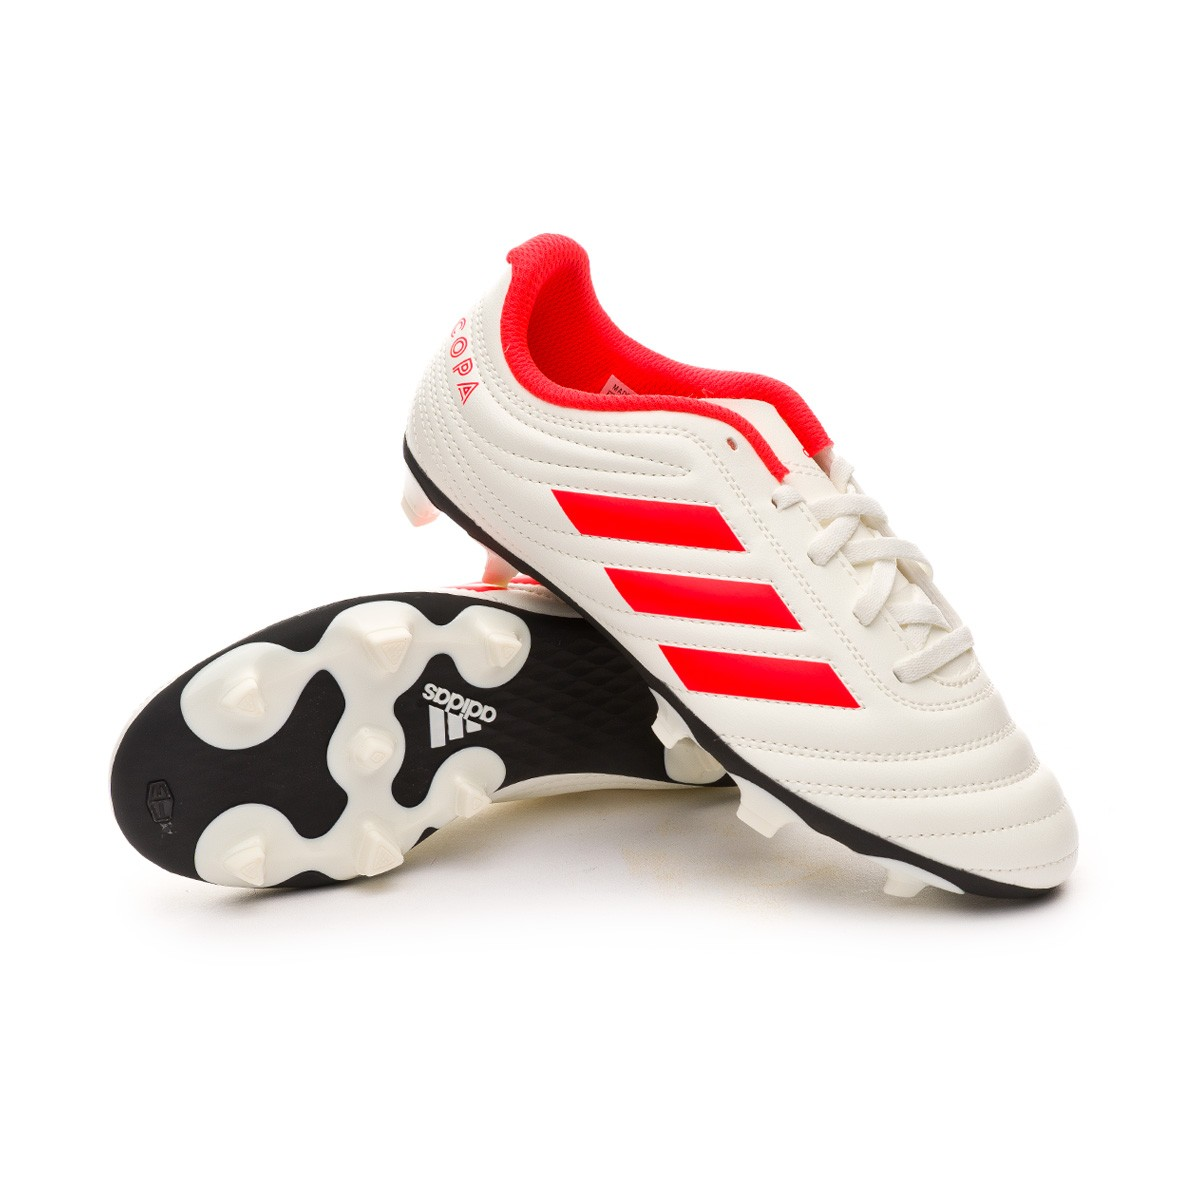 sale retailer 3ff4a a8a2e adidas Kids Copa 19.4 FG Football Boots. Off white-Solar red-Off ...